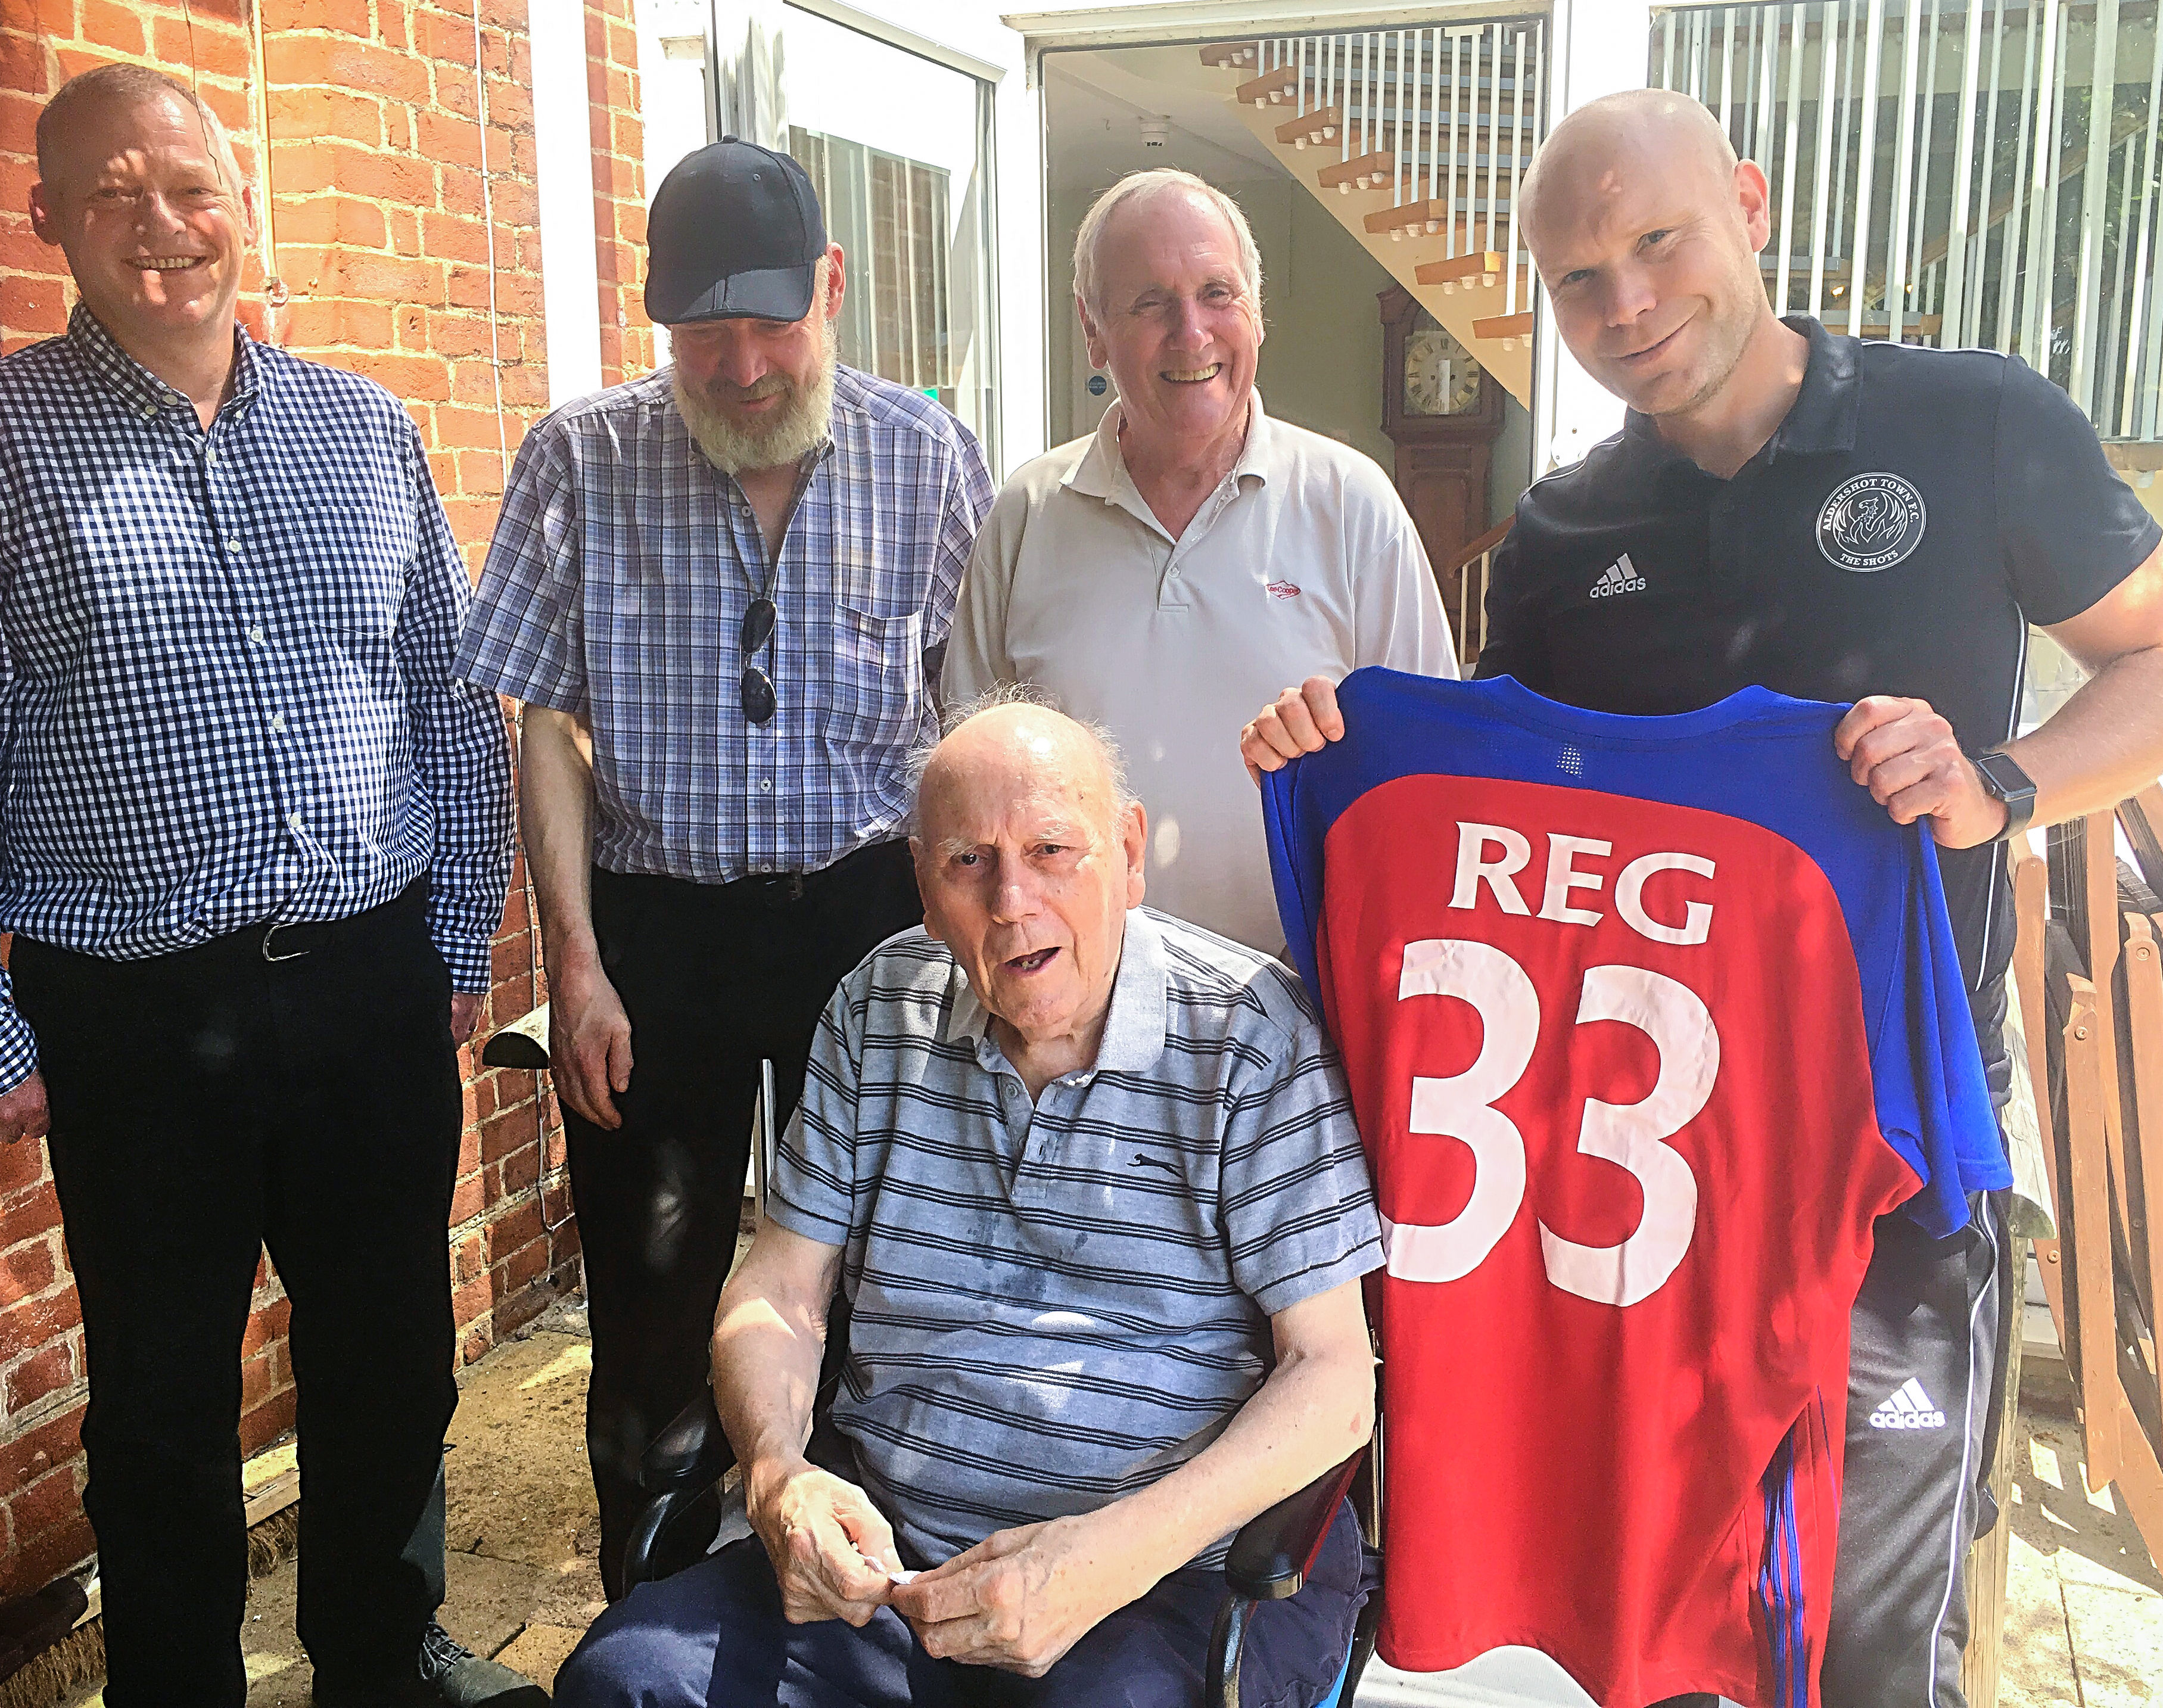 Reg Cuff, Aldershot Town Football Club manager Danny Searle and Reg's family stood together with Reg's new shirt